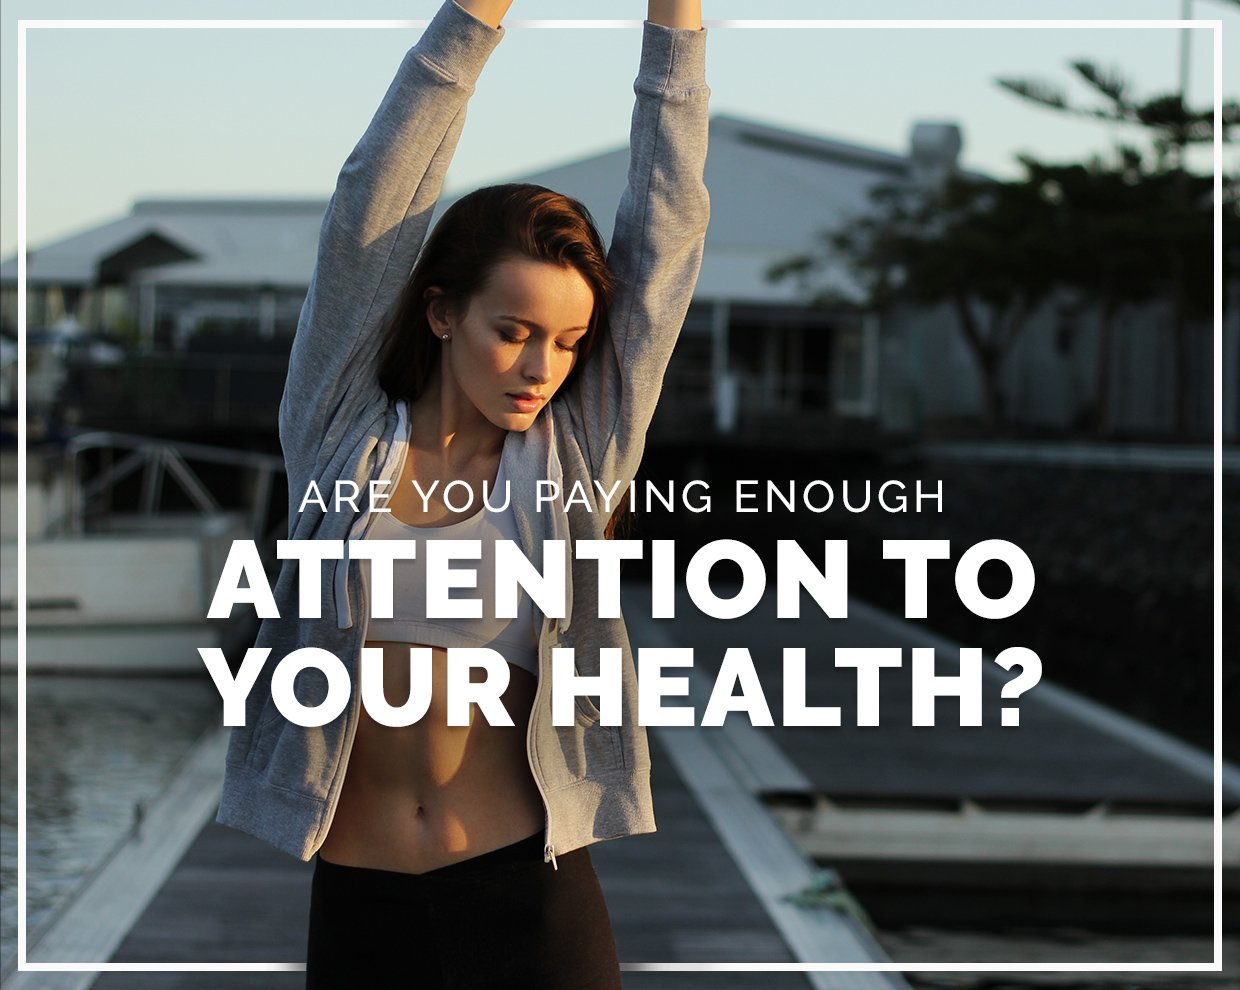 Are You Paying Enough Attention To Your Health